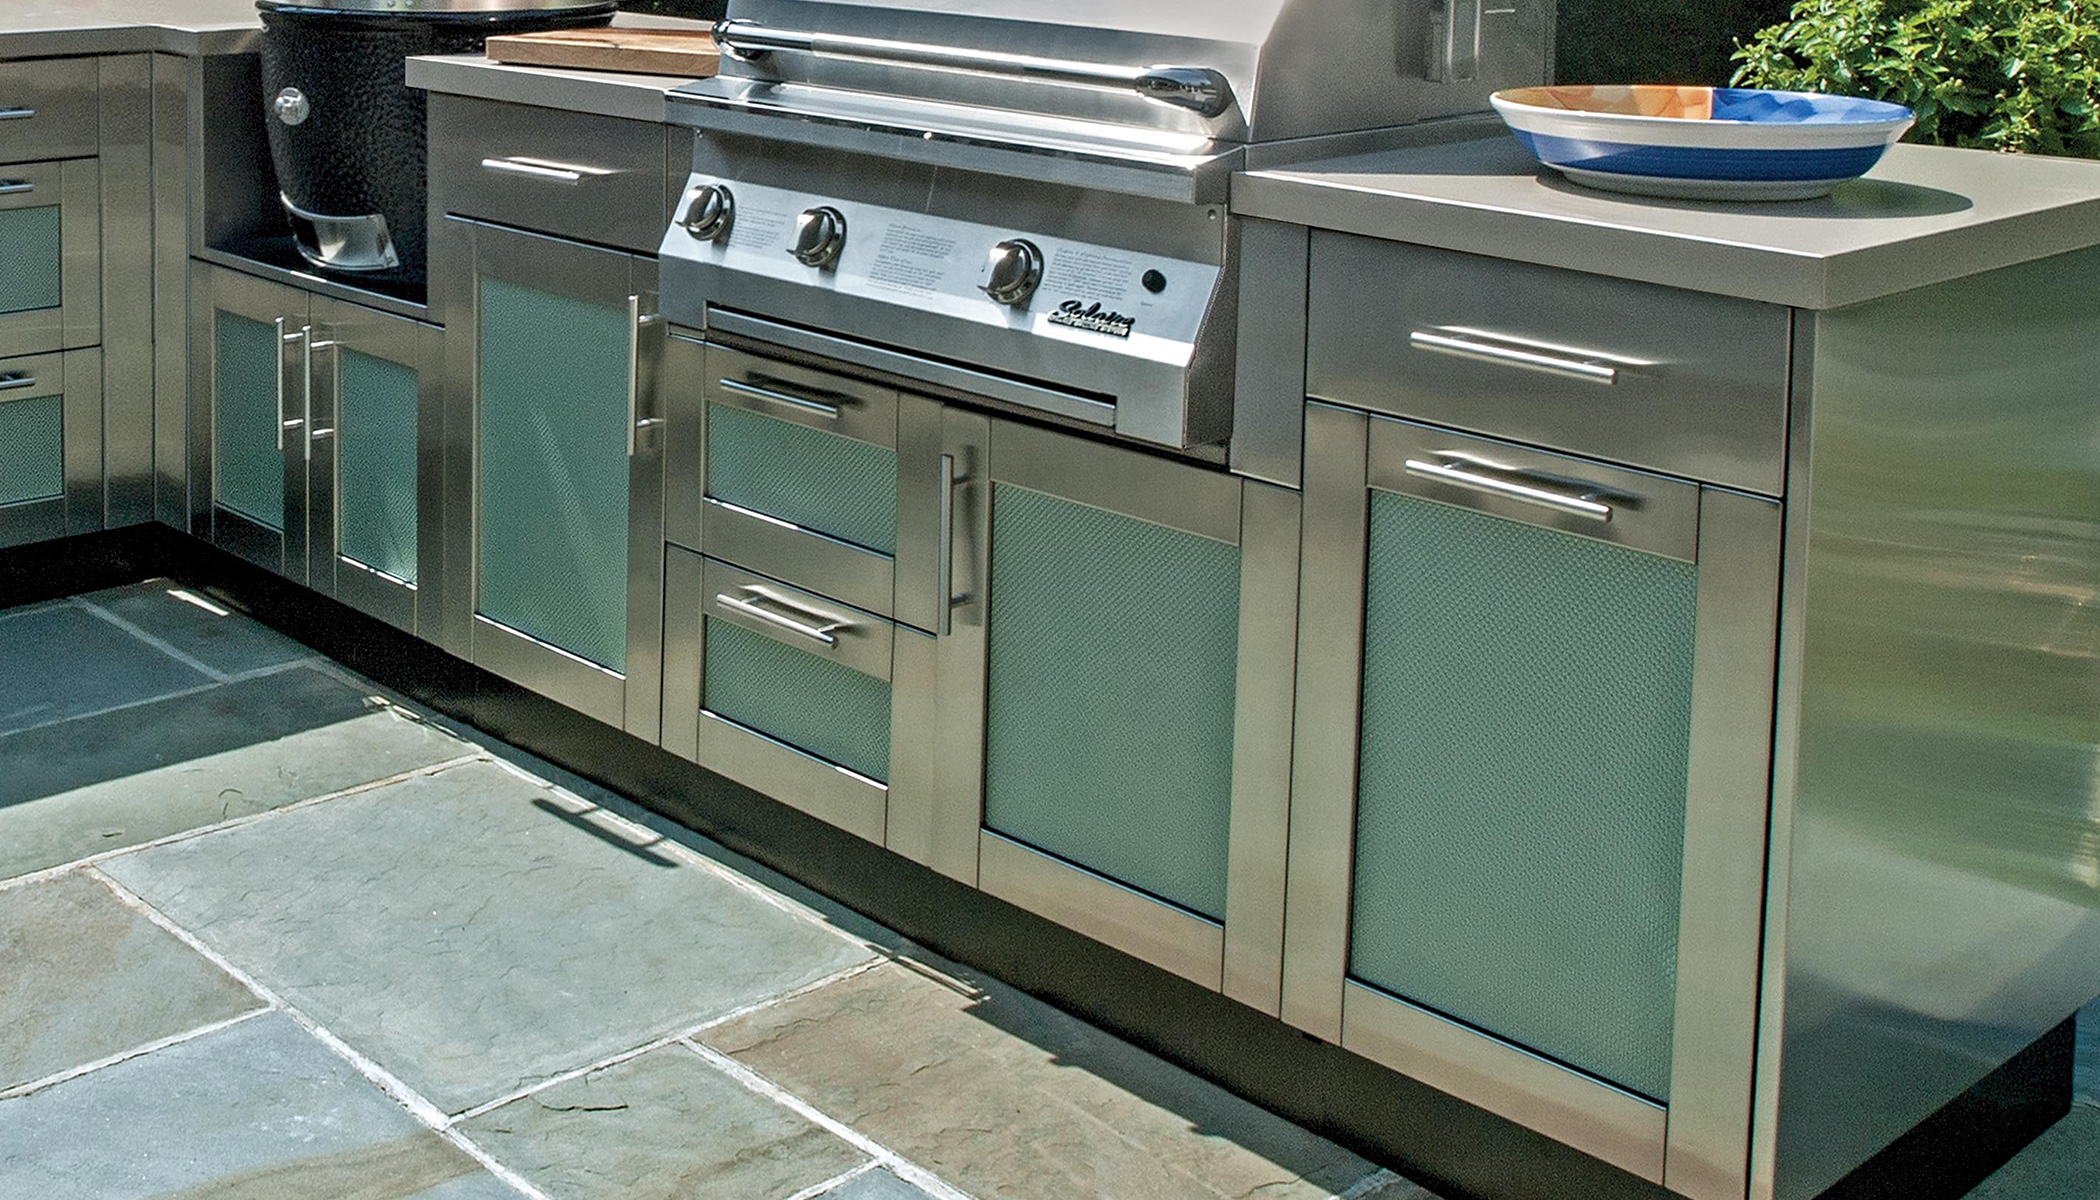 Outdoor Stainless Steel Cabinets Prodigious Outdoor Kitchen Cabinets Stainless Steel